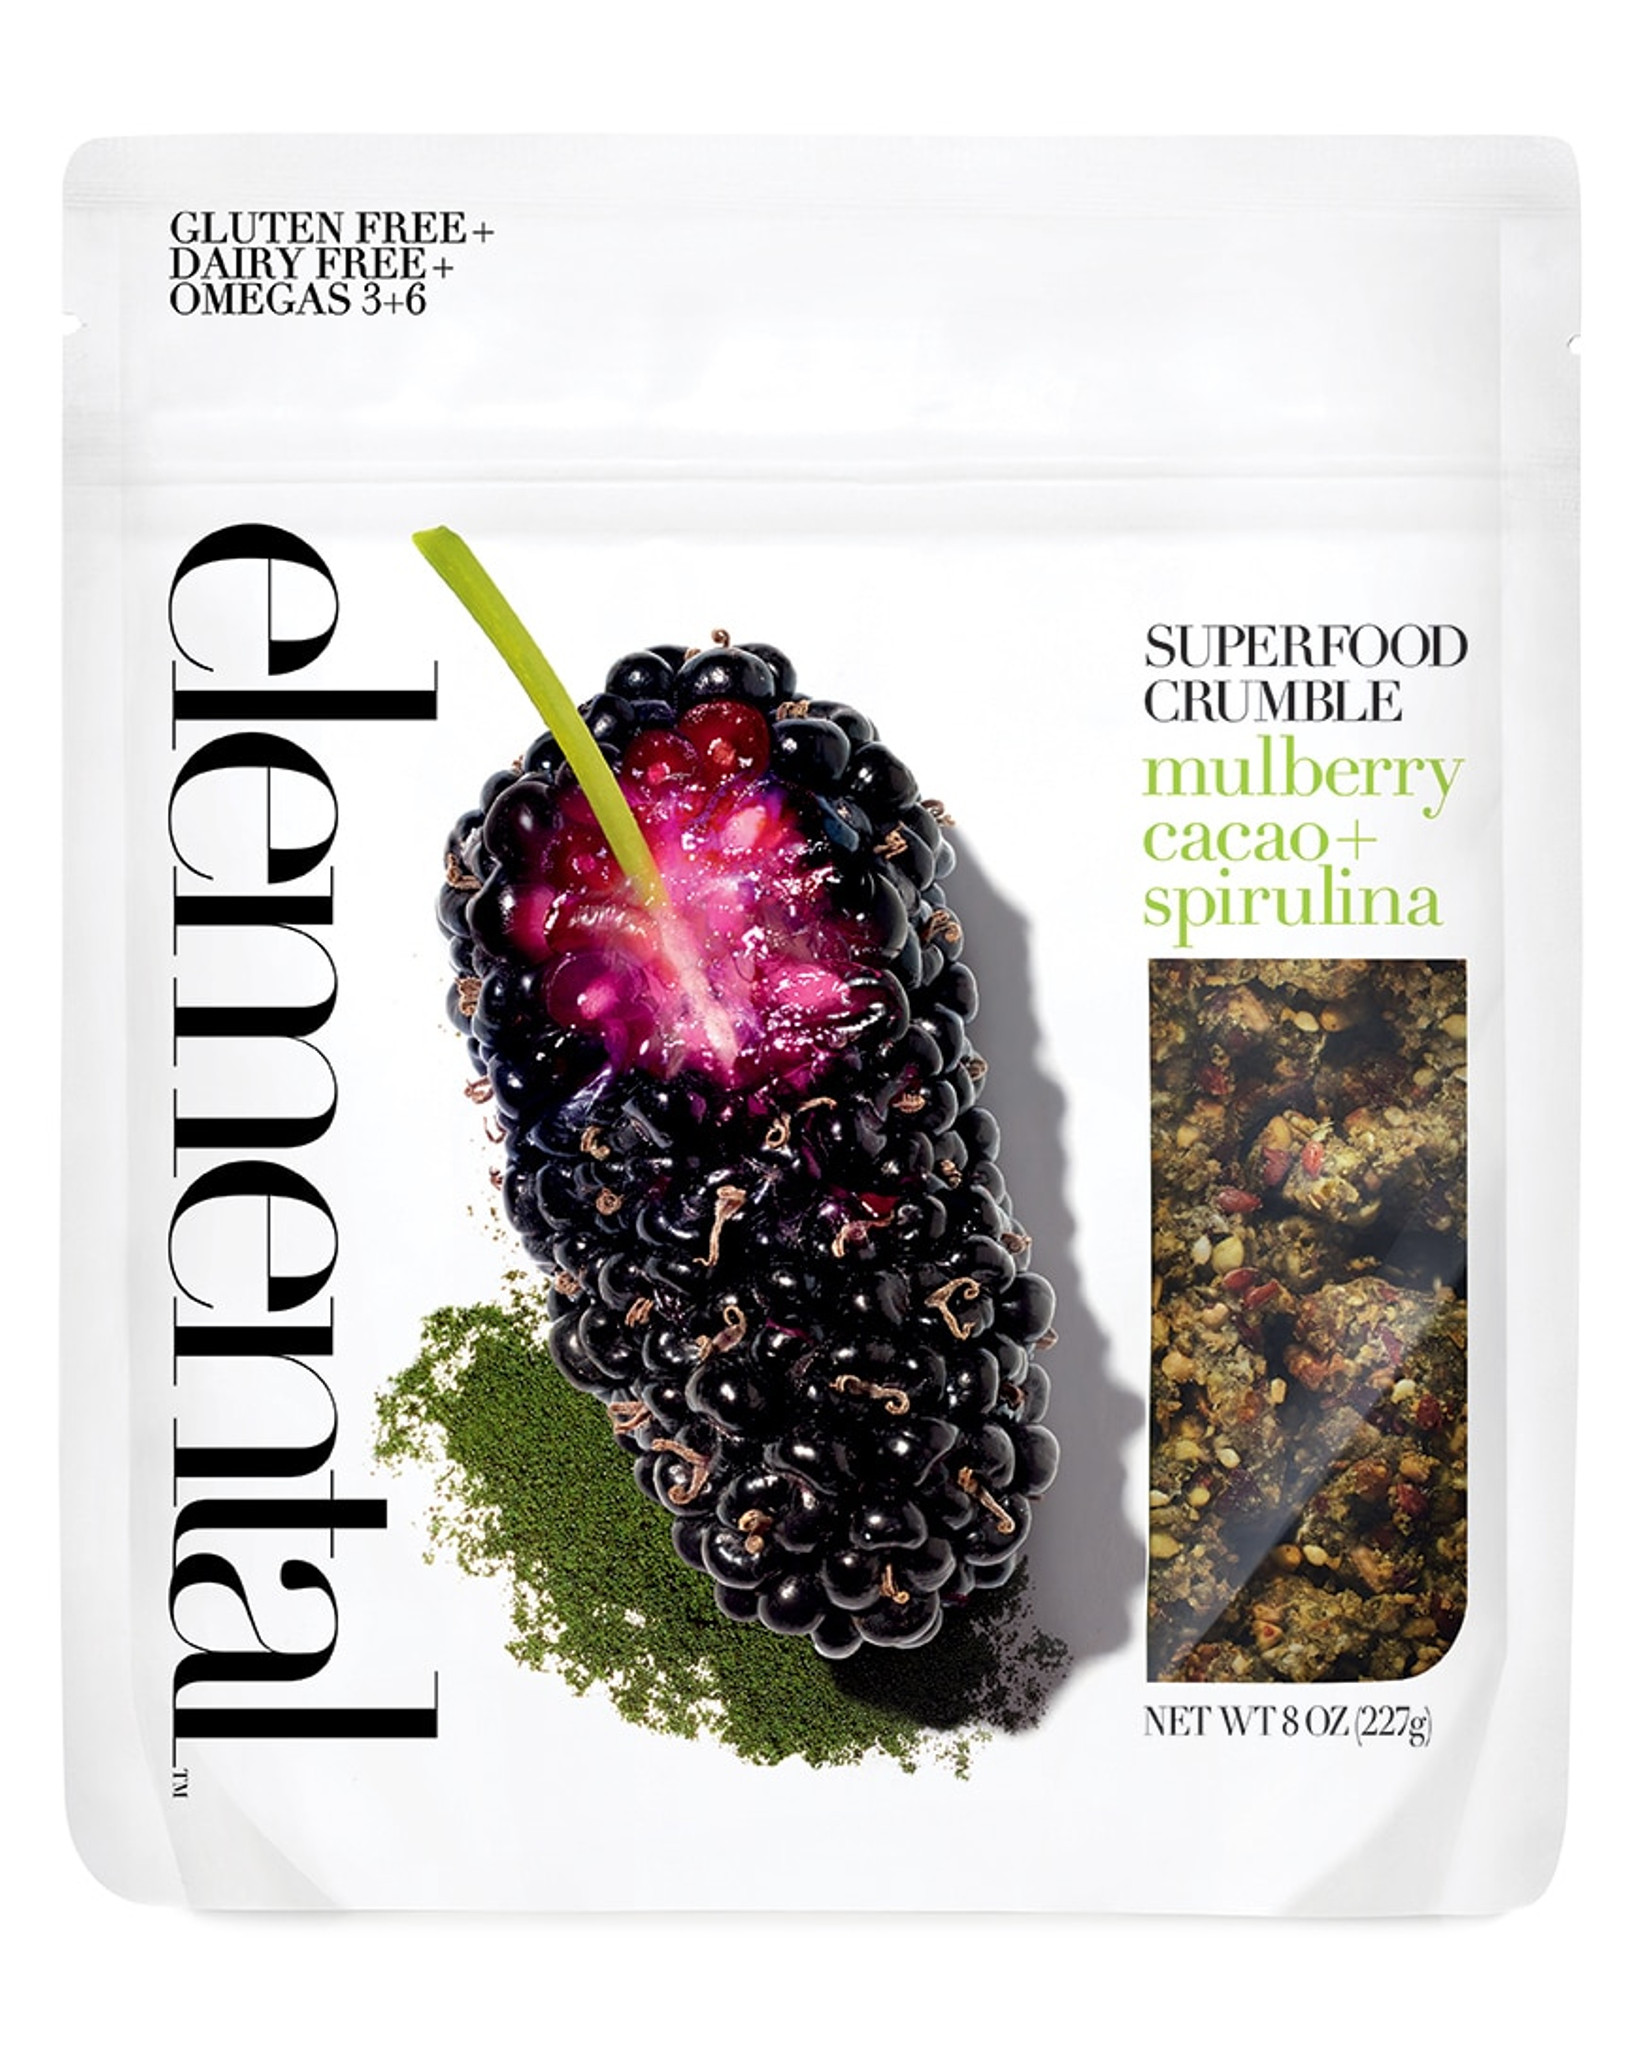 Crumble Mulberry Cacao + Spirulina